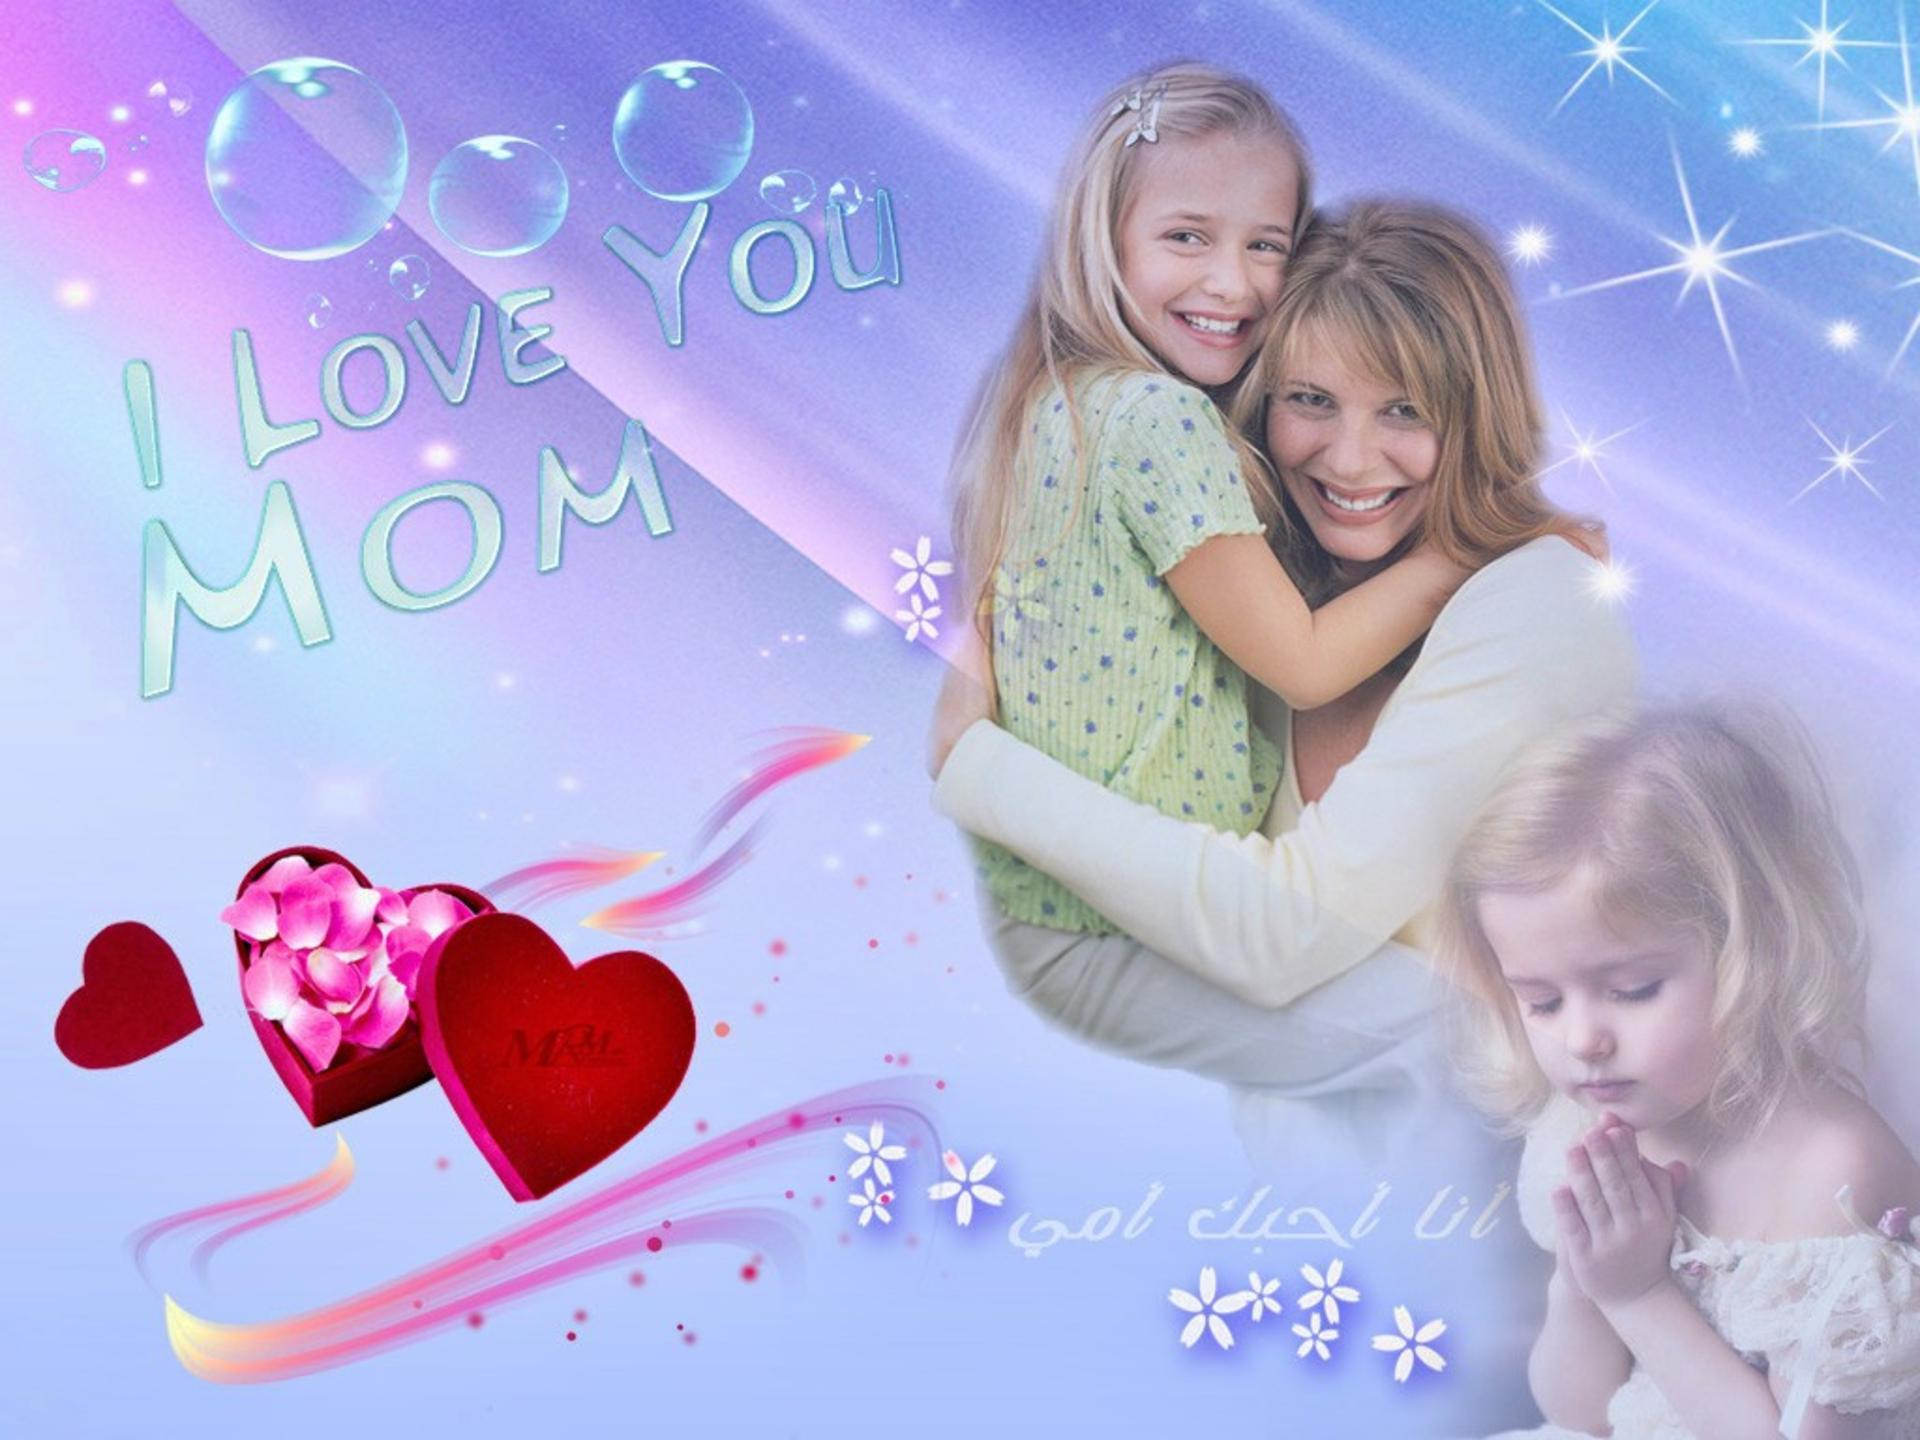 Cute Mother And Baby Greetings I Love You Mom Wallpapers Download